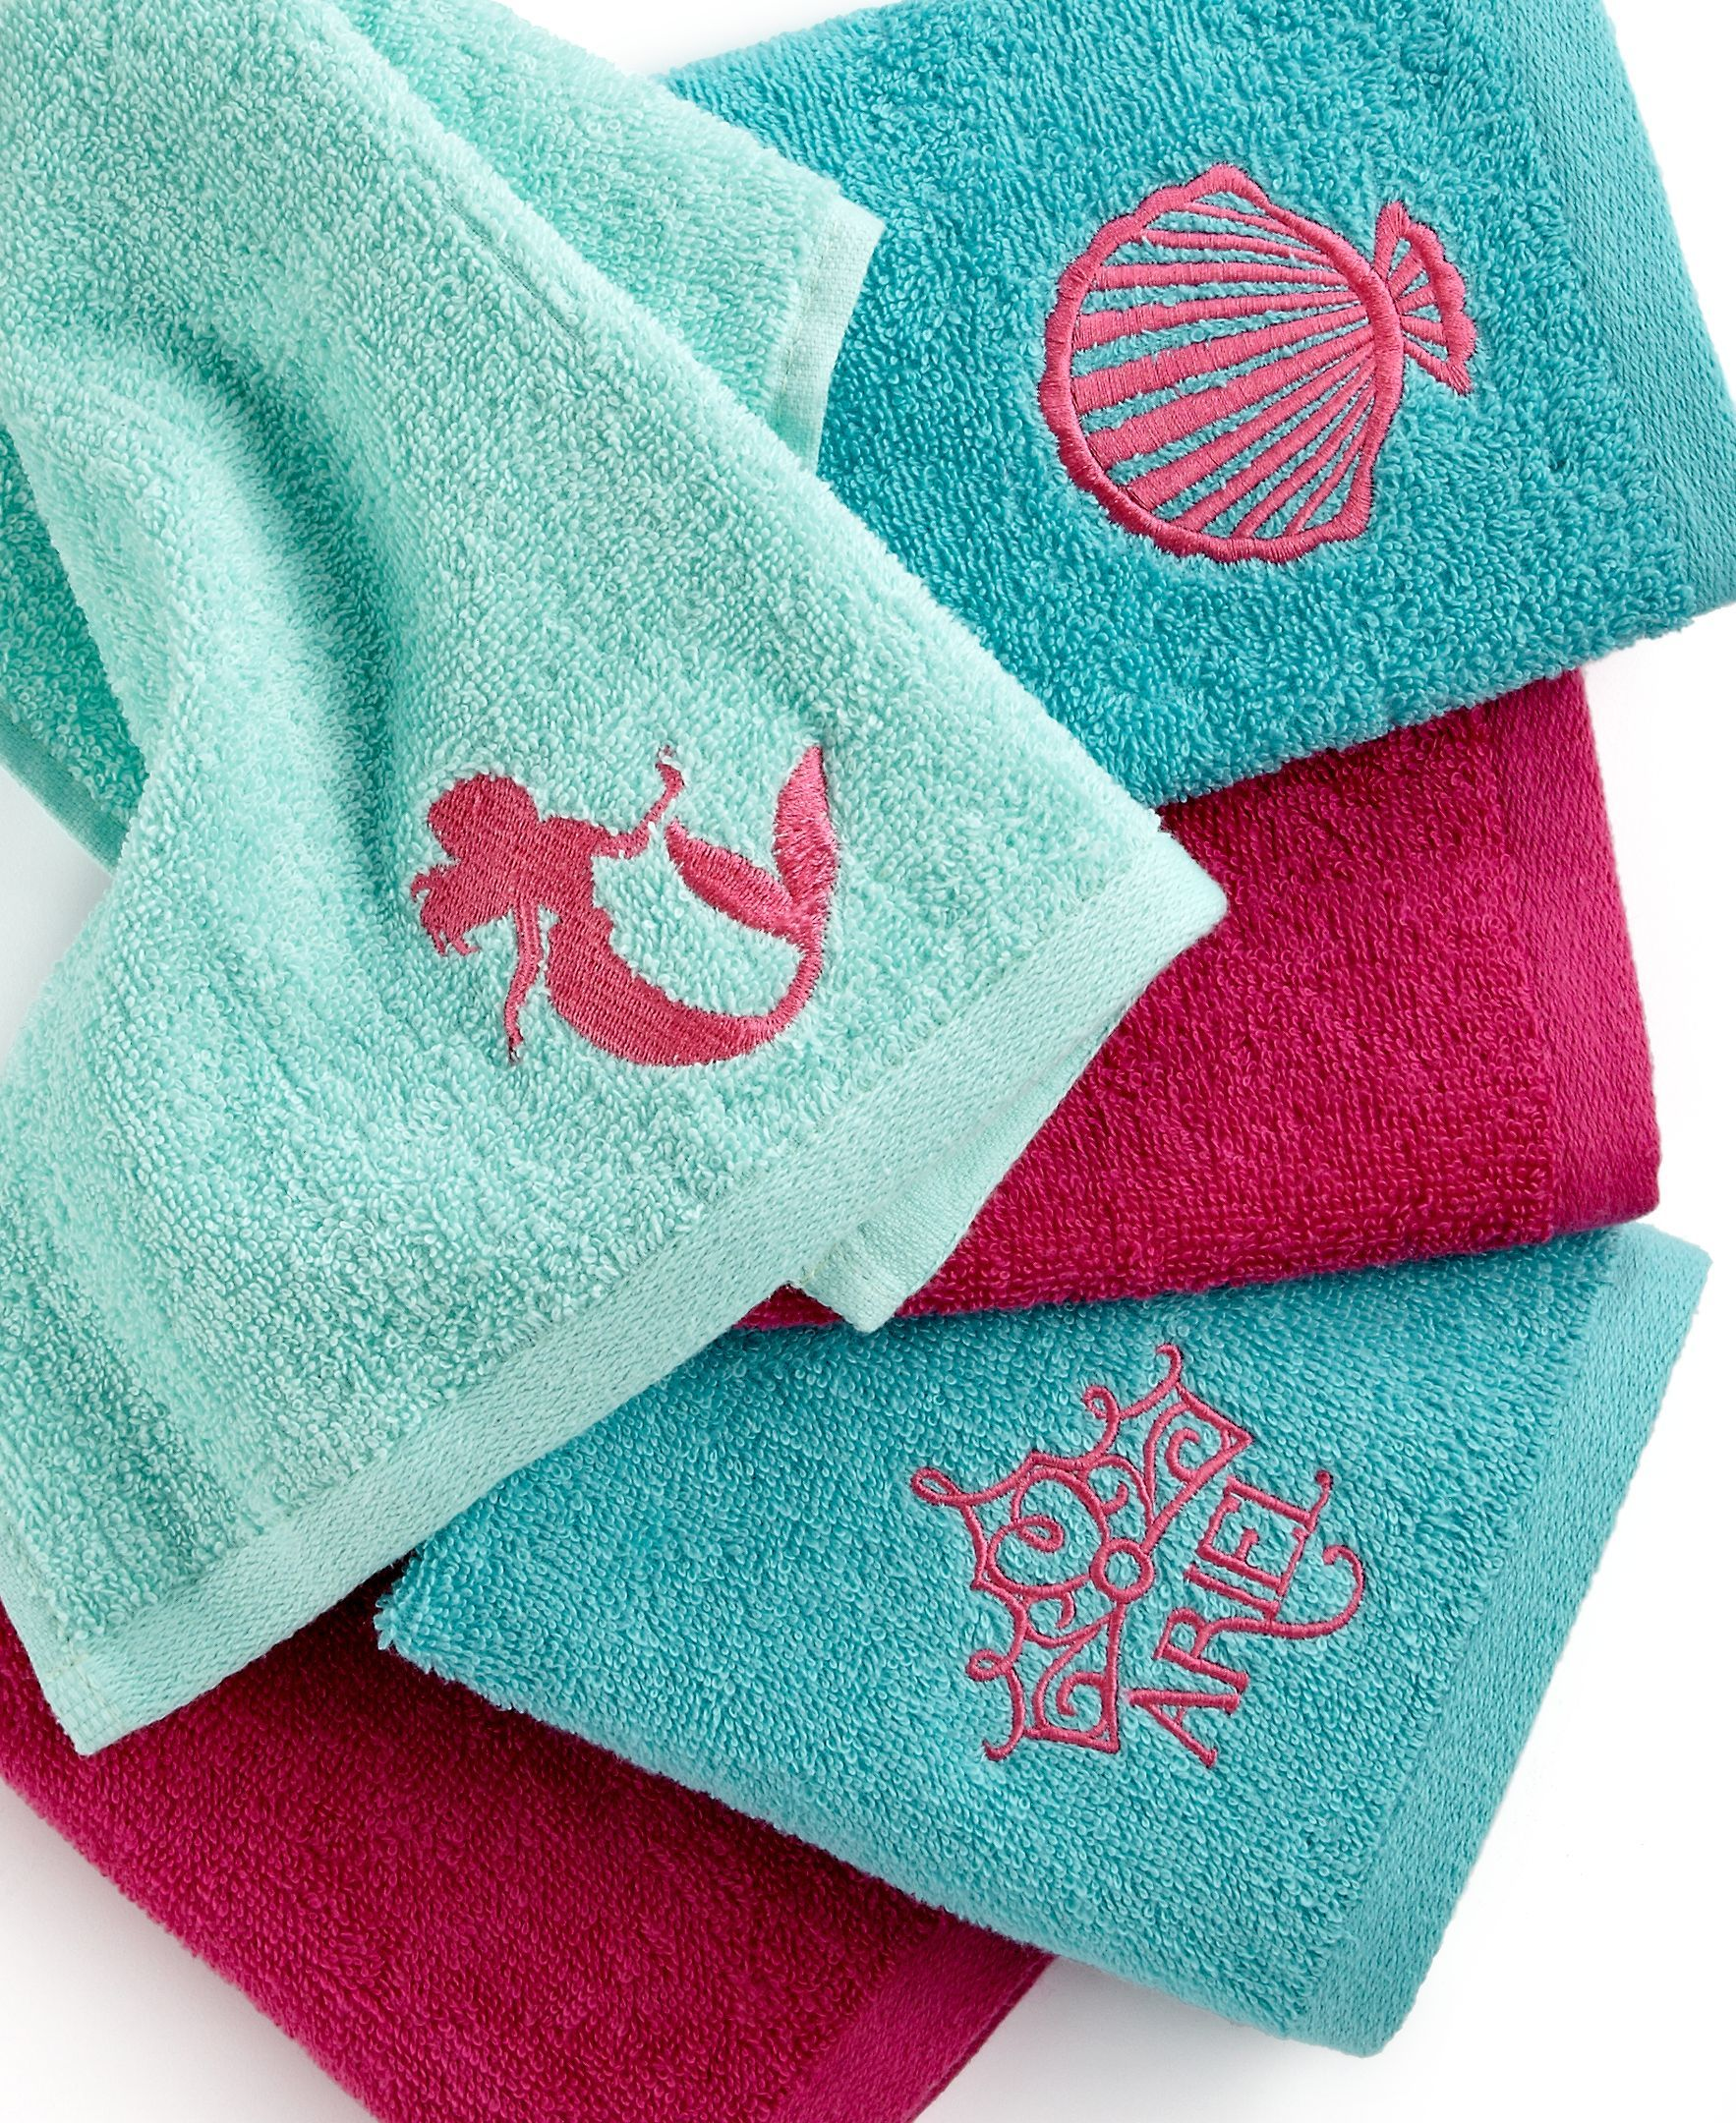 Disney Bath Accessories, Little Mermaid Shimmer and Gleam ...